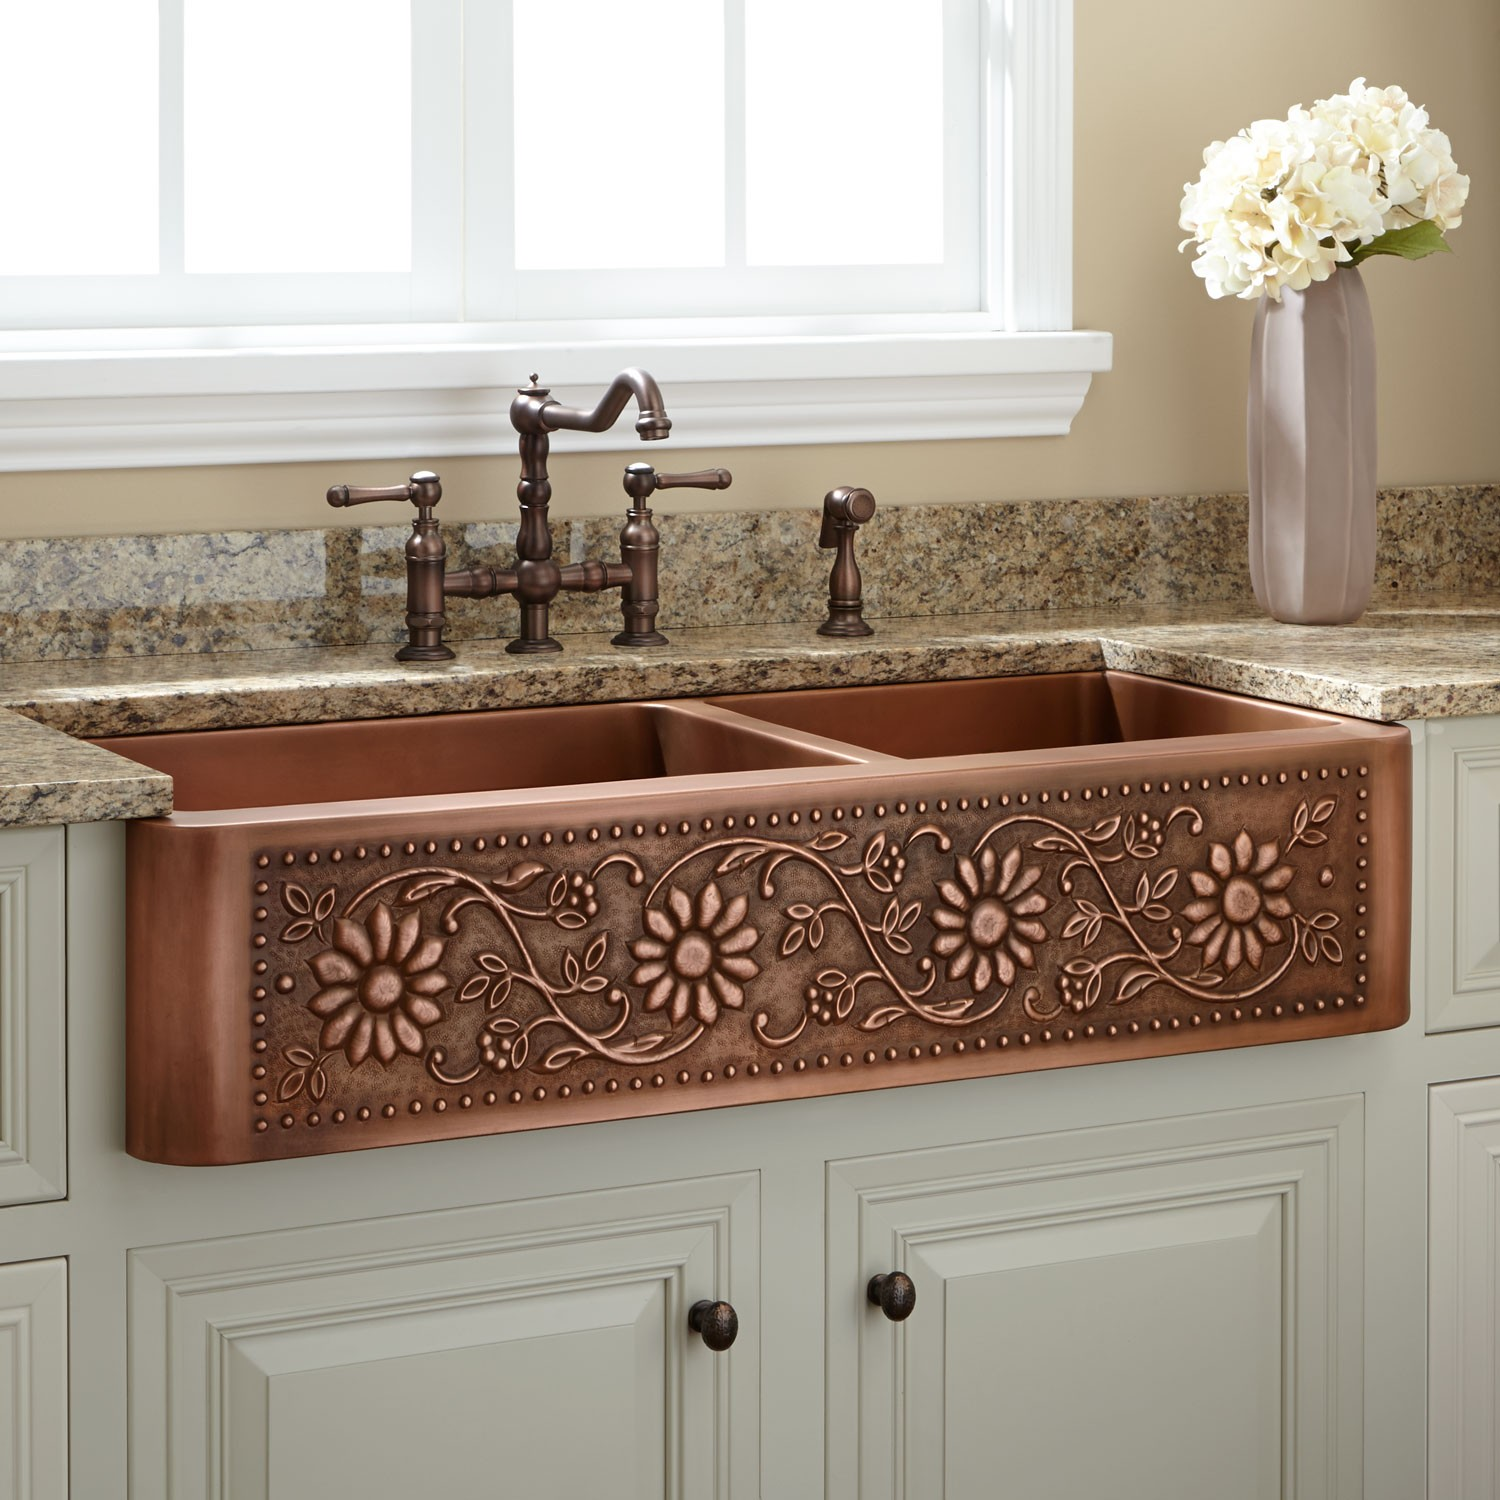 copper-kitchen-sink-is-one-of-the-best-idea-to-remodel-your-kitchen-with-delightful-design-2